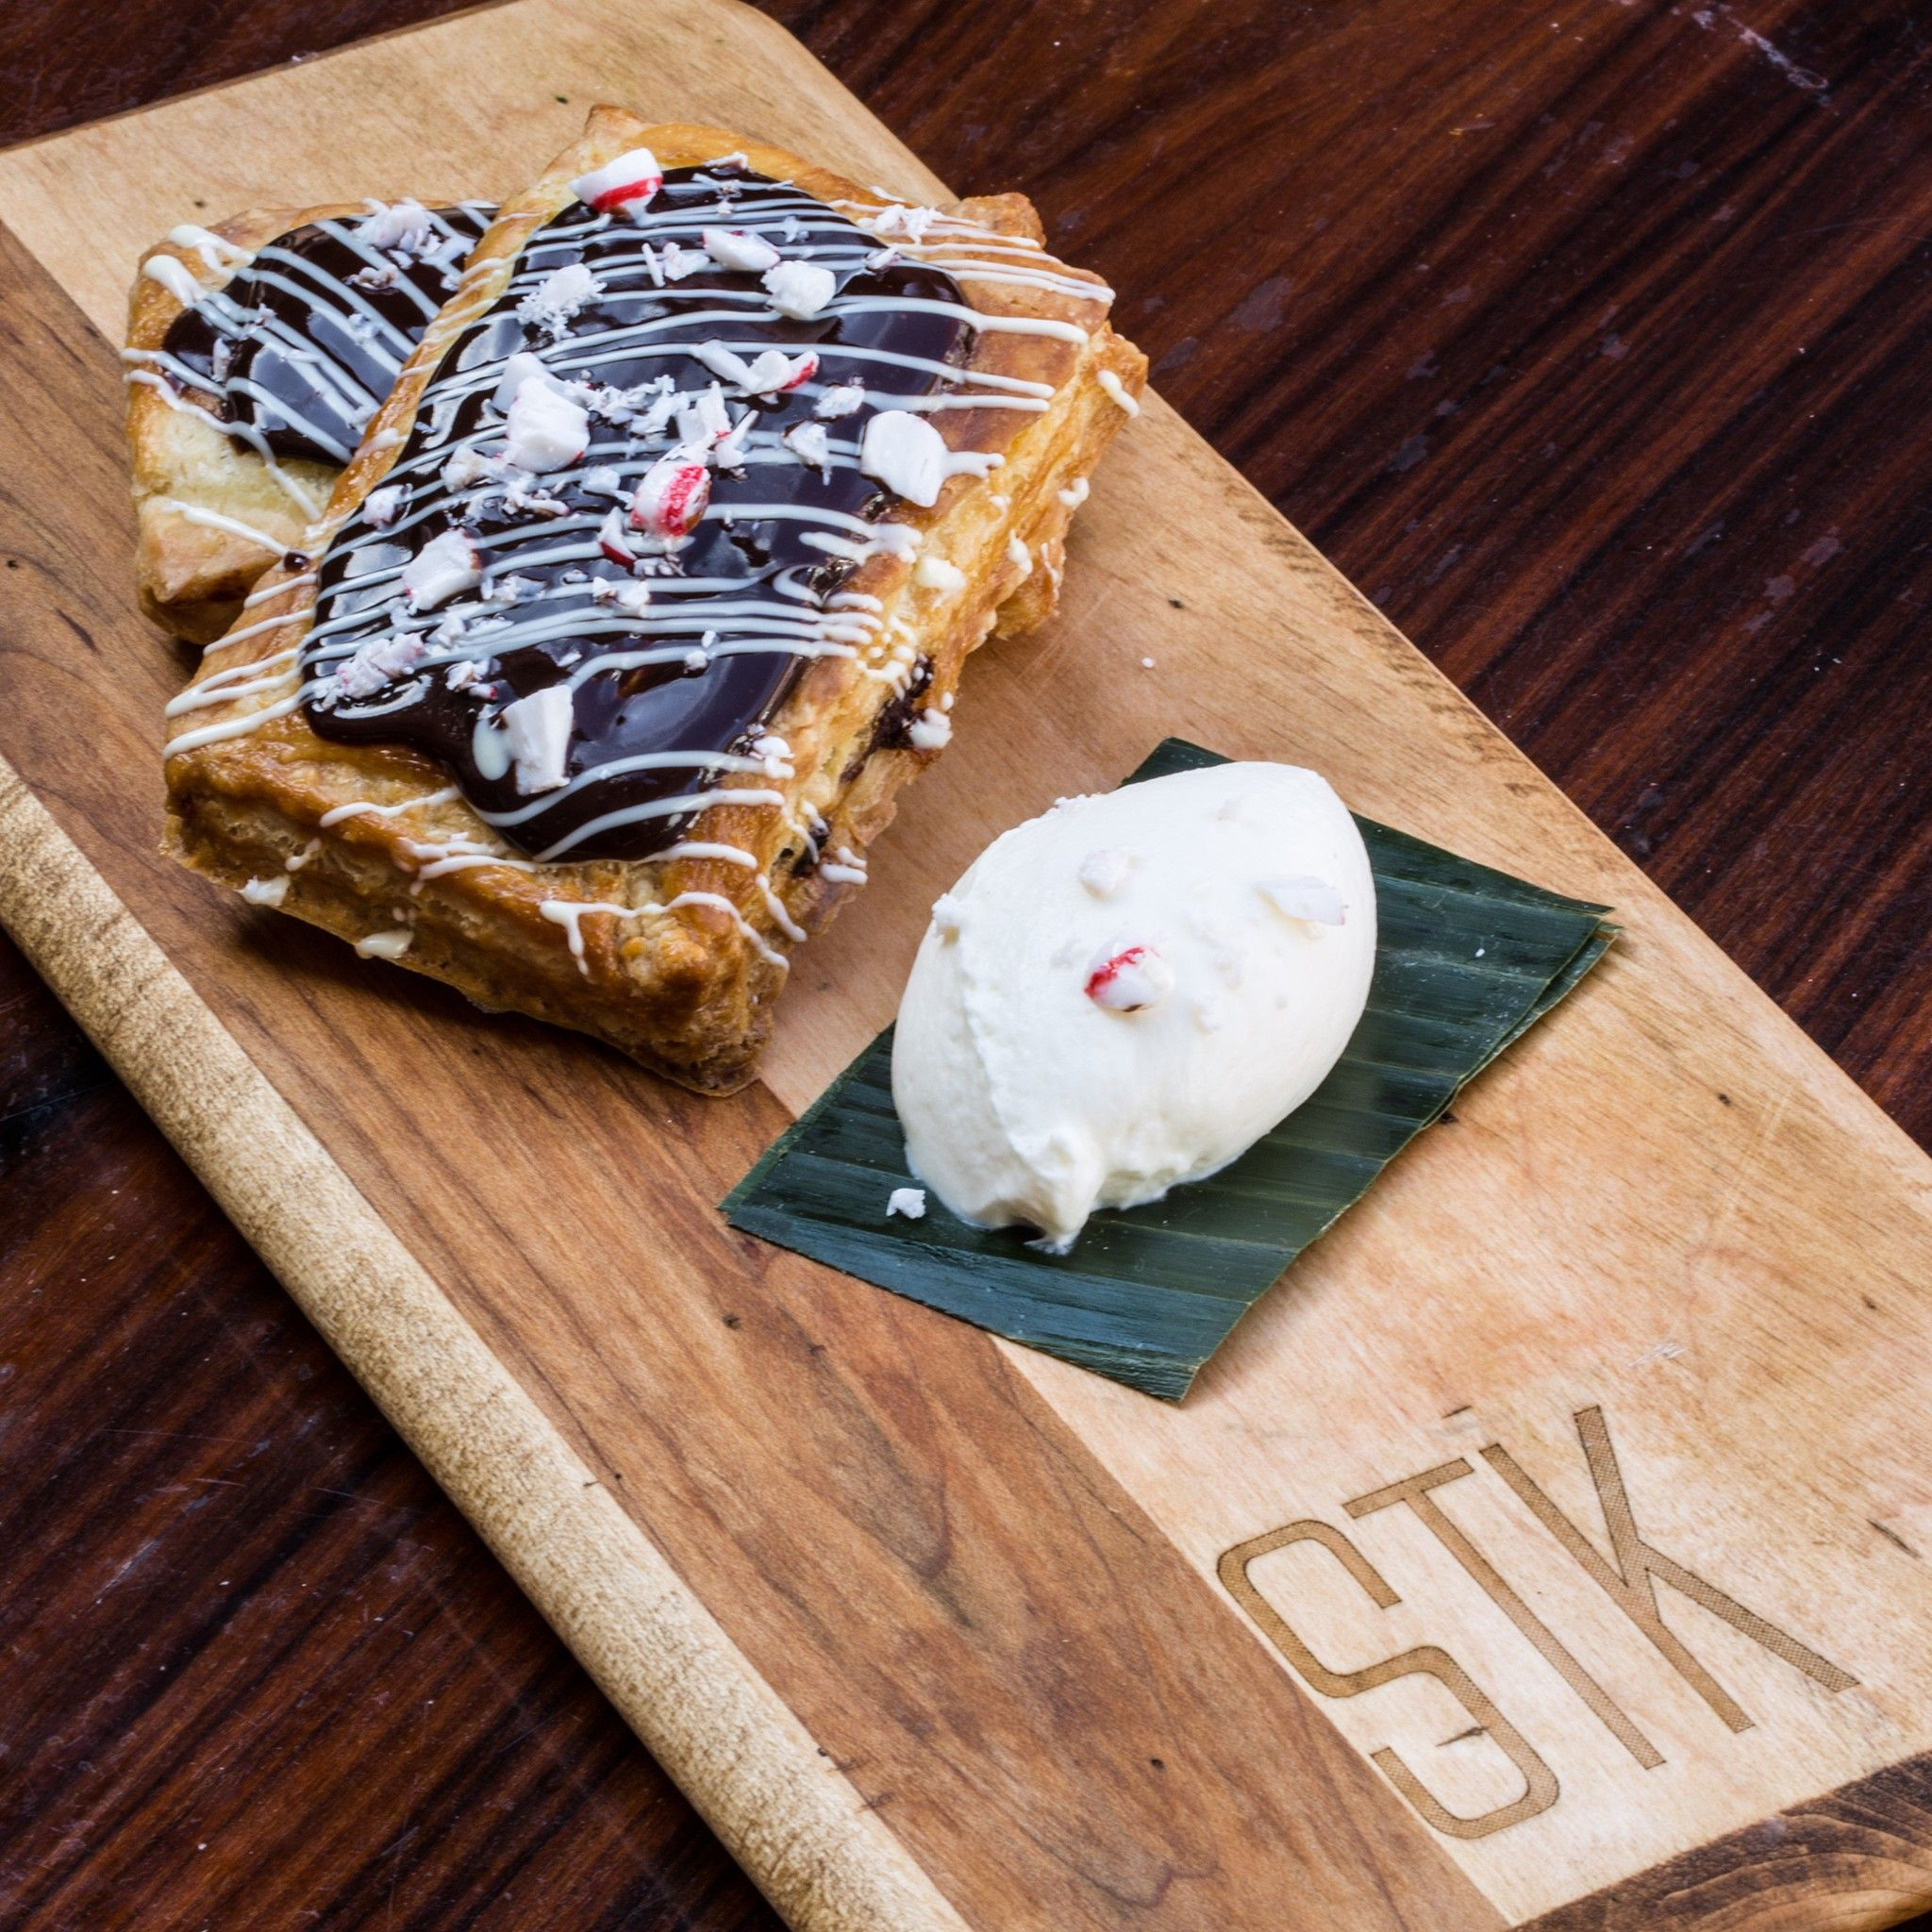 'Tis the season of alcohol-filled delights. - grown up pop tart at STK